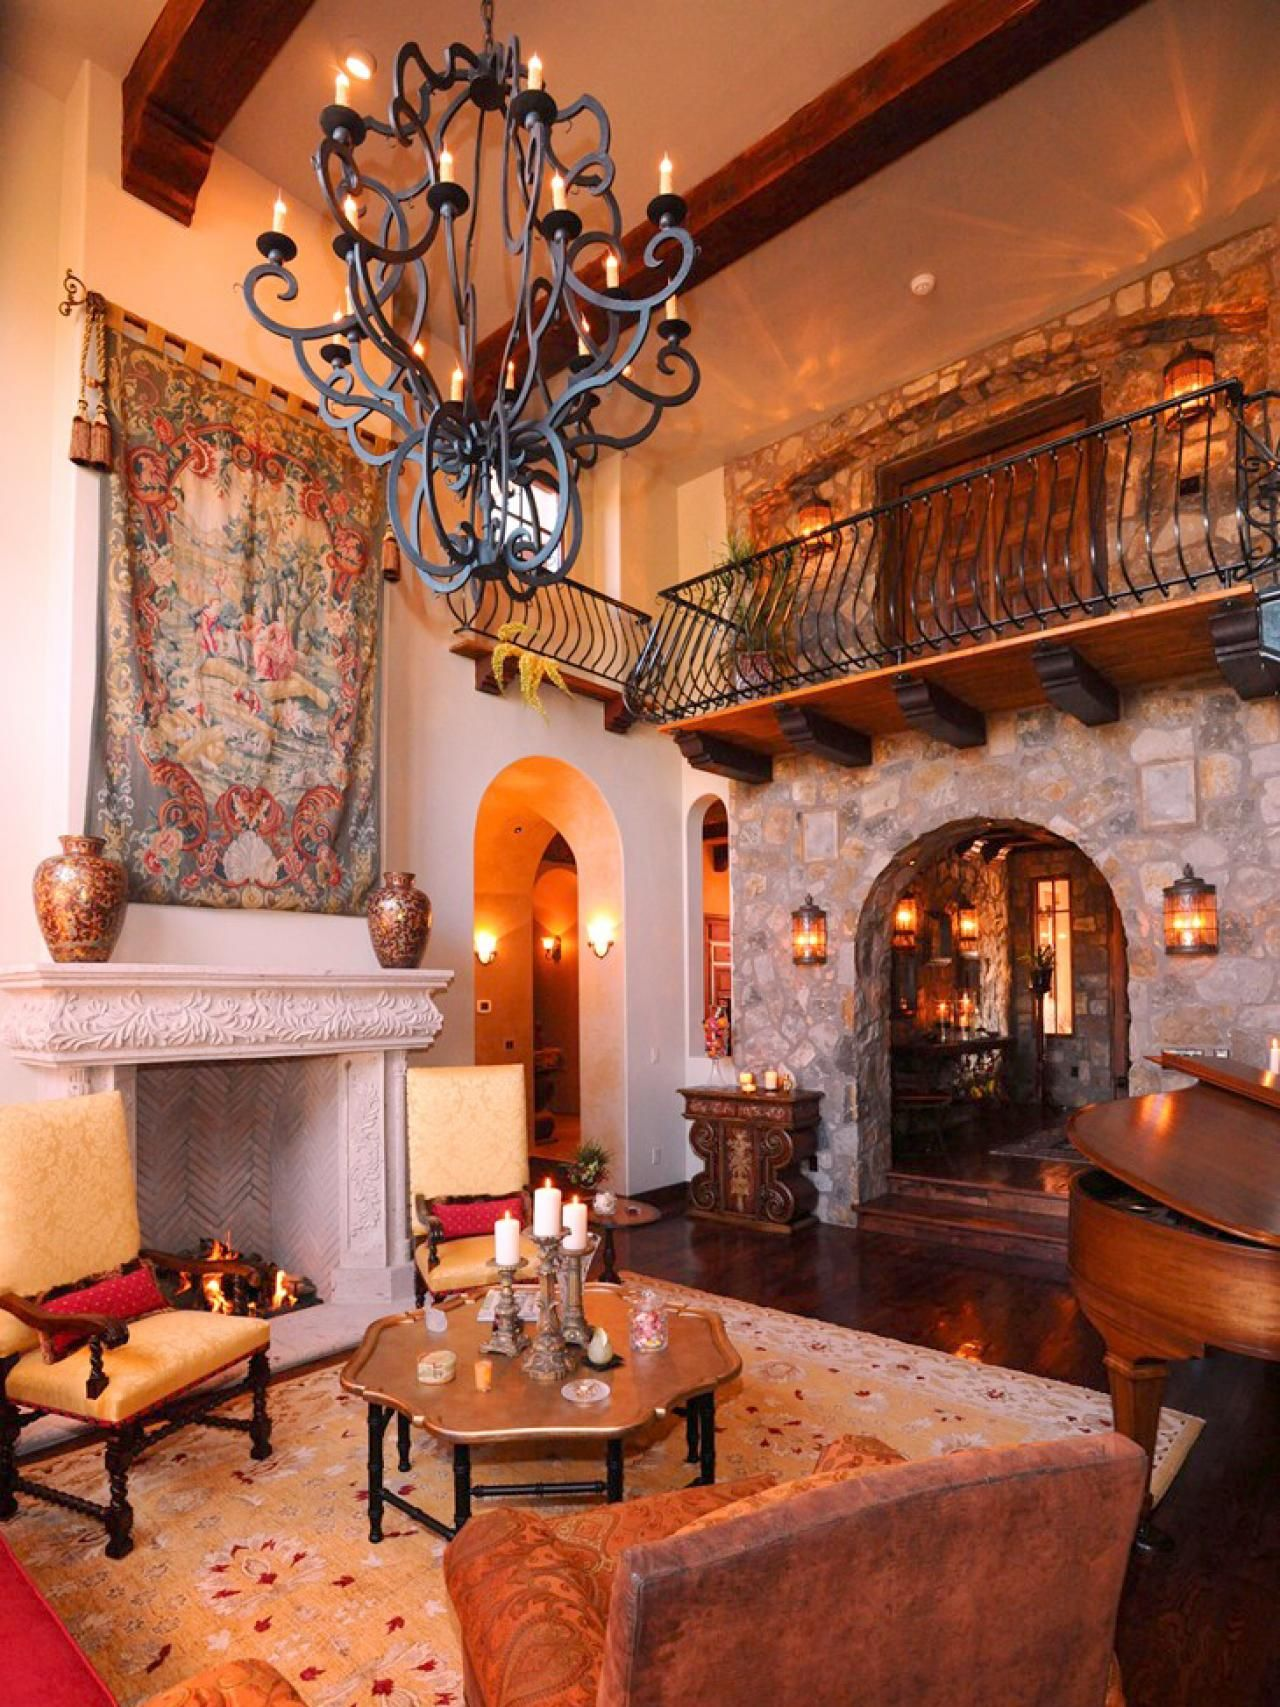 Spanish Style Decorating Ideas Spanish Style Decor Spanish Style Homes Spanish Style Interiors #spanish #style #living #room #ideas